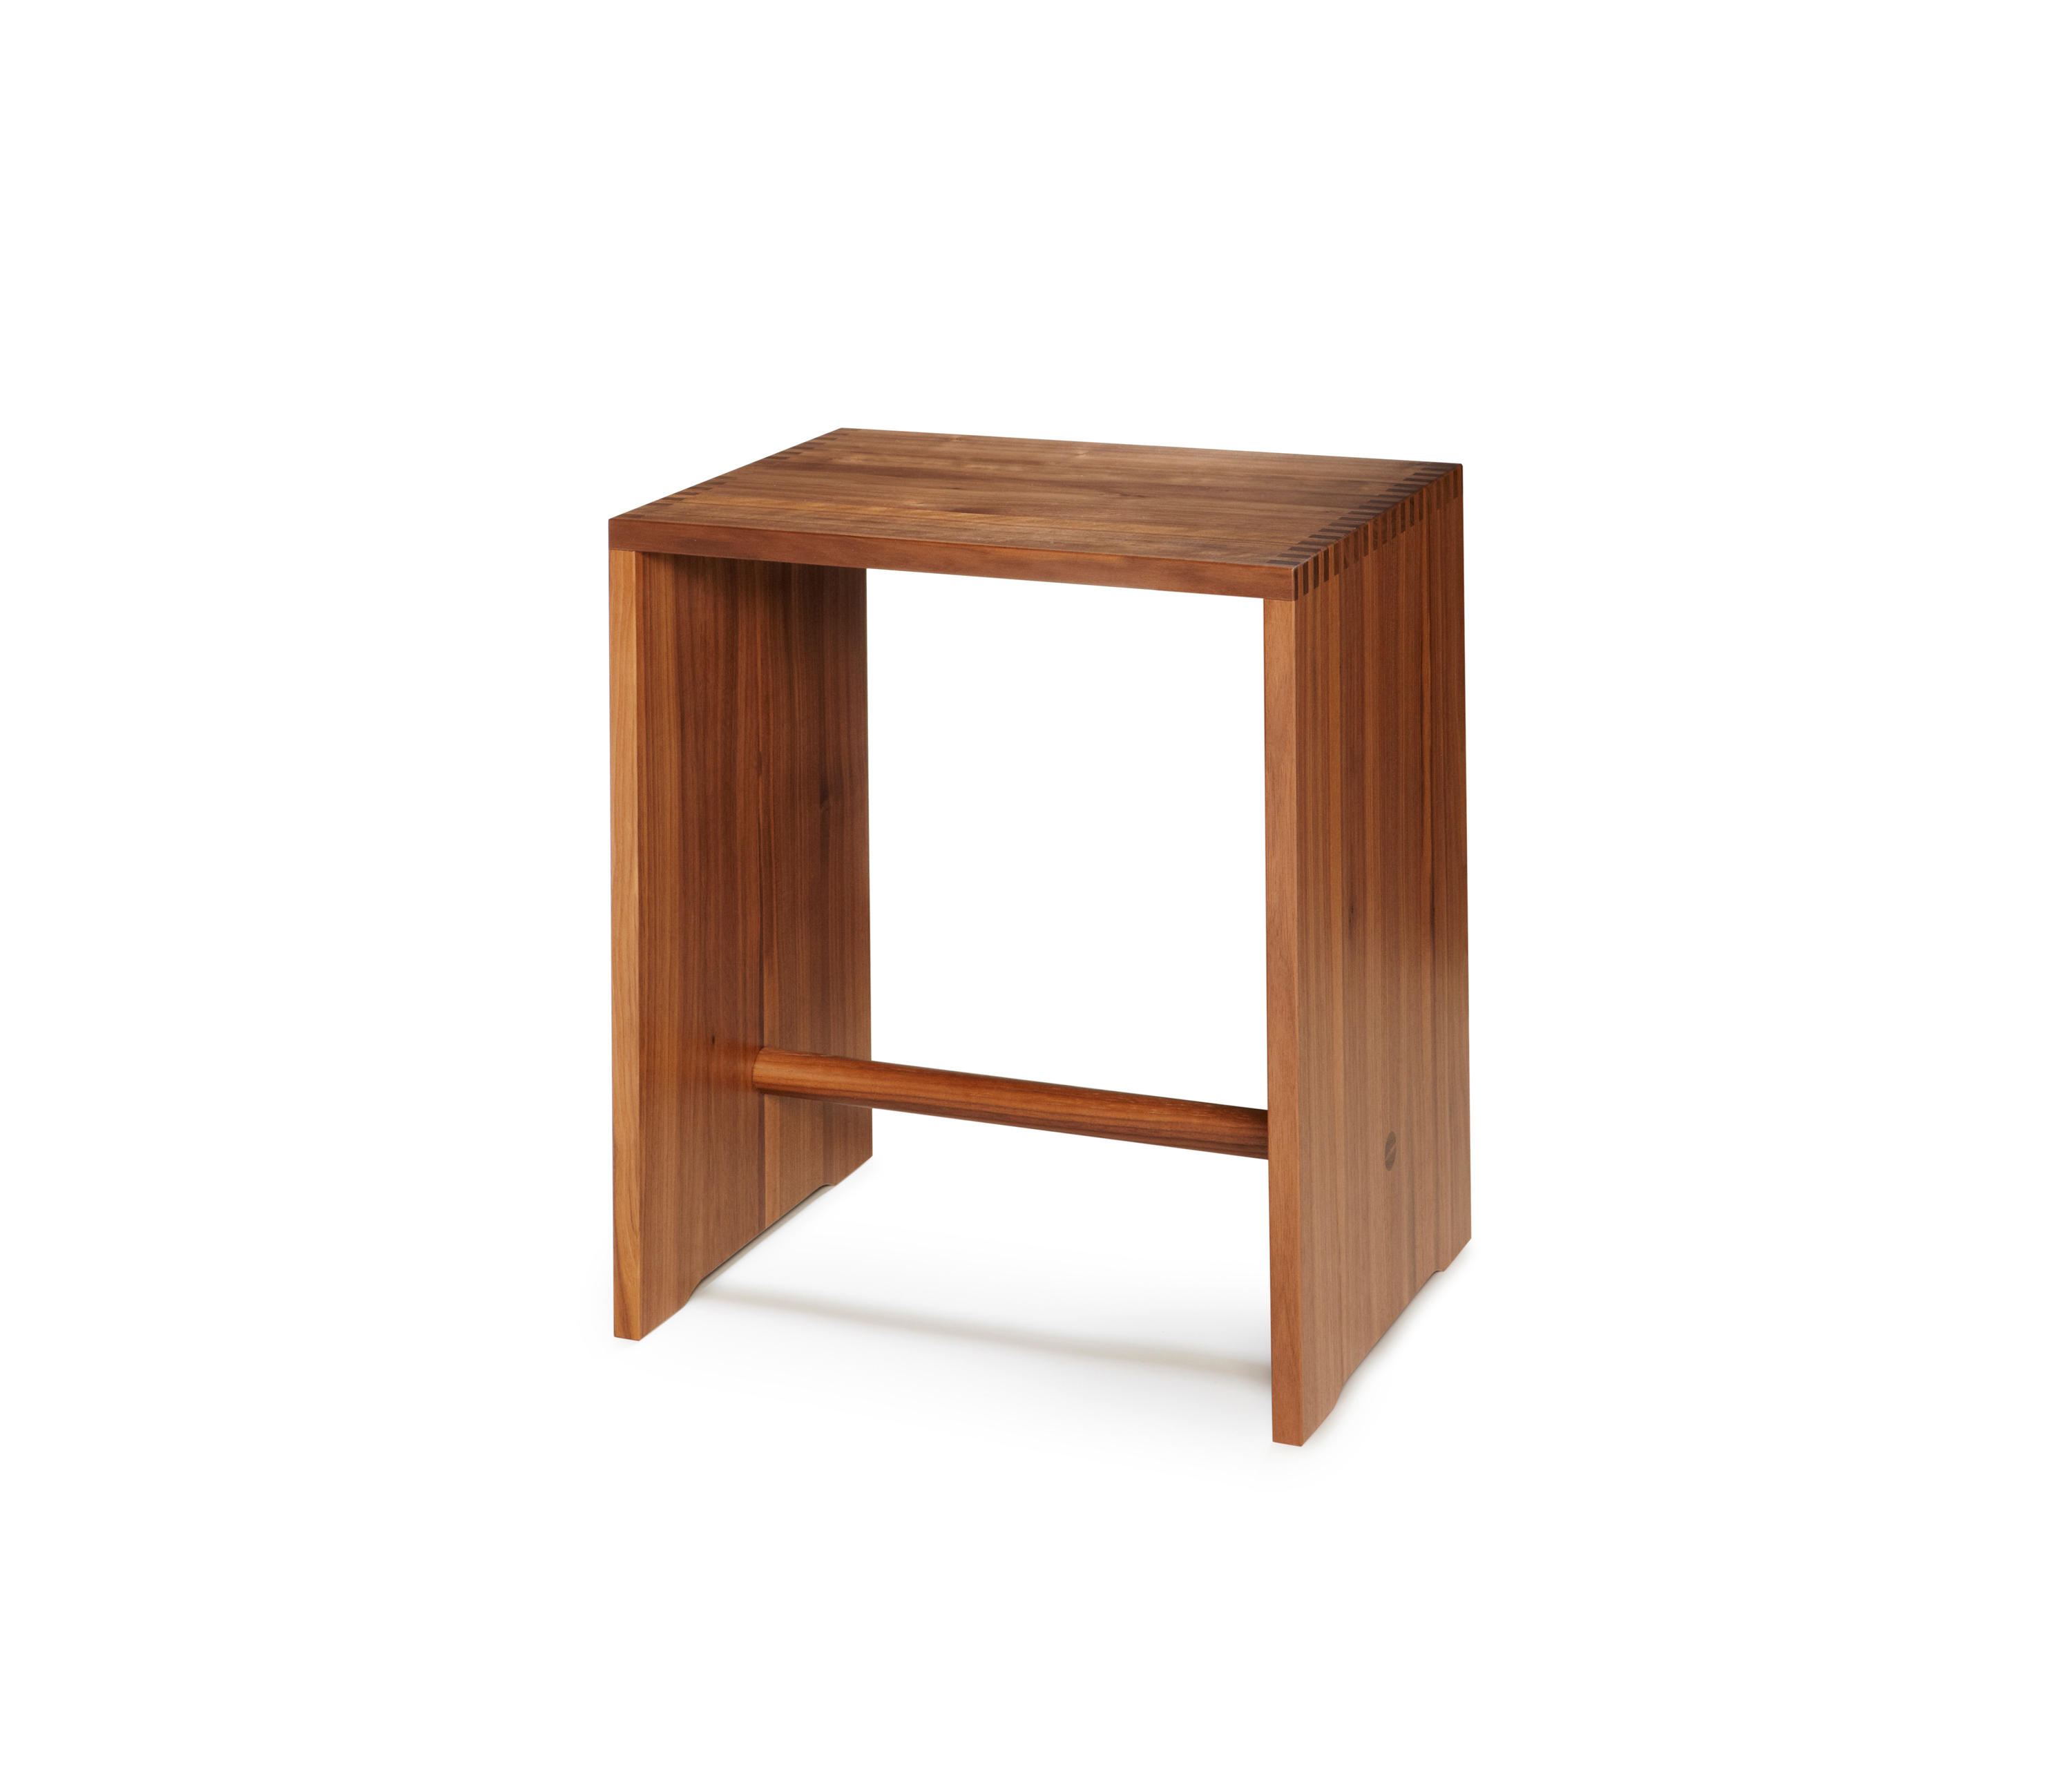 bill ulmer stool walnut night stands from wb form ag. Black Bedroom Furniture Sets. Home Design Ideas